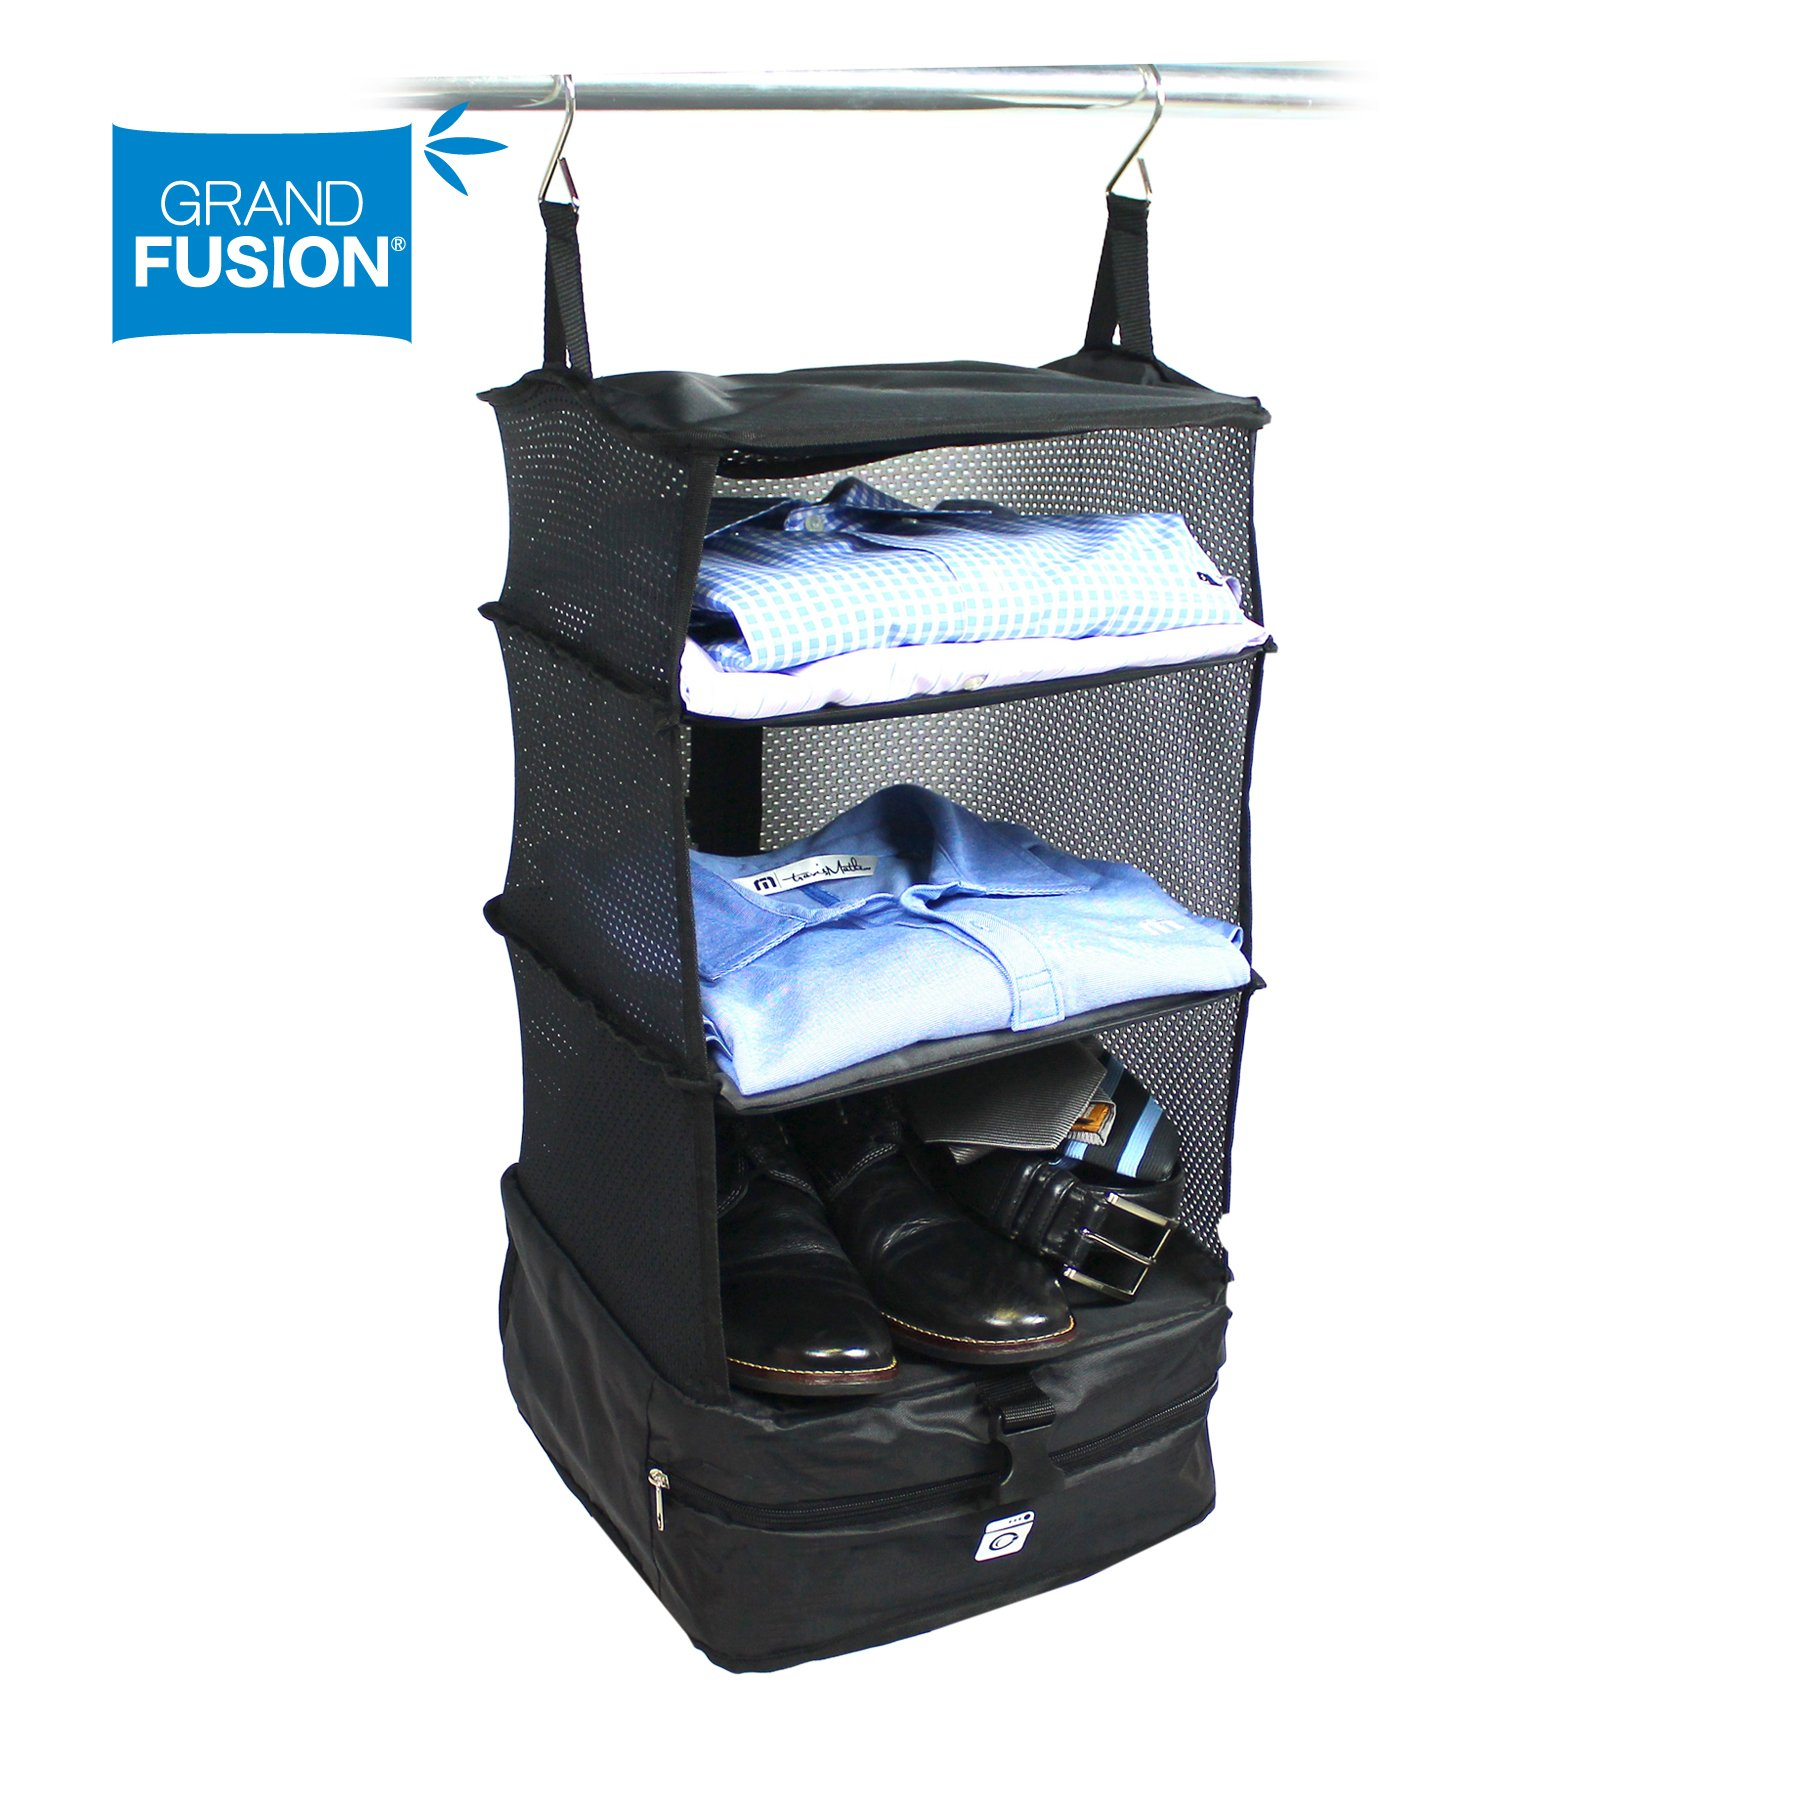 Stow-N-Go Portable Luggage System Suitcase Organizer - Small, Packable Hanging Travel Shelves & Packing Cube Organizer